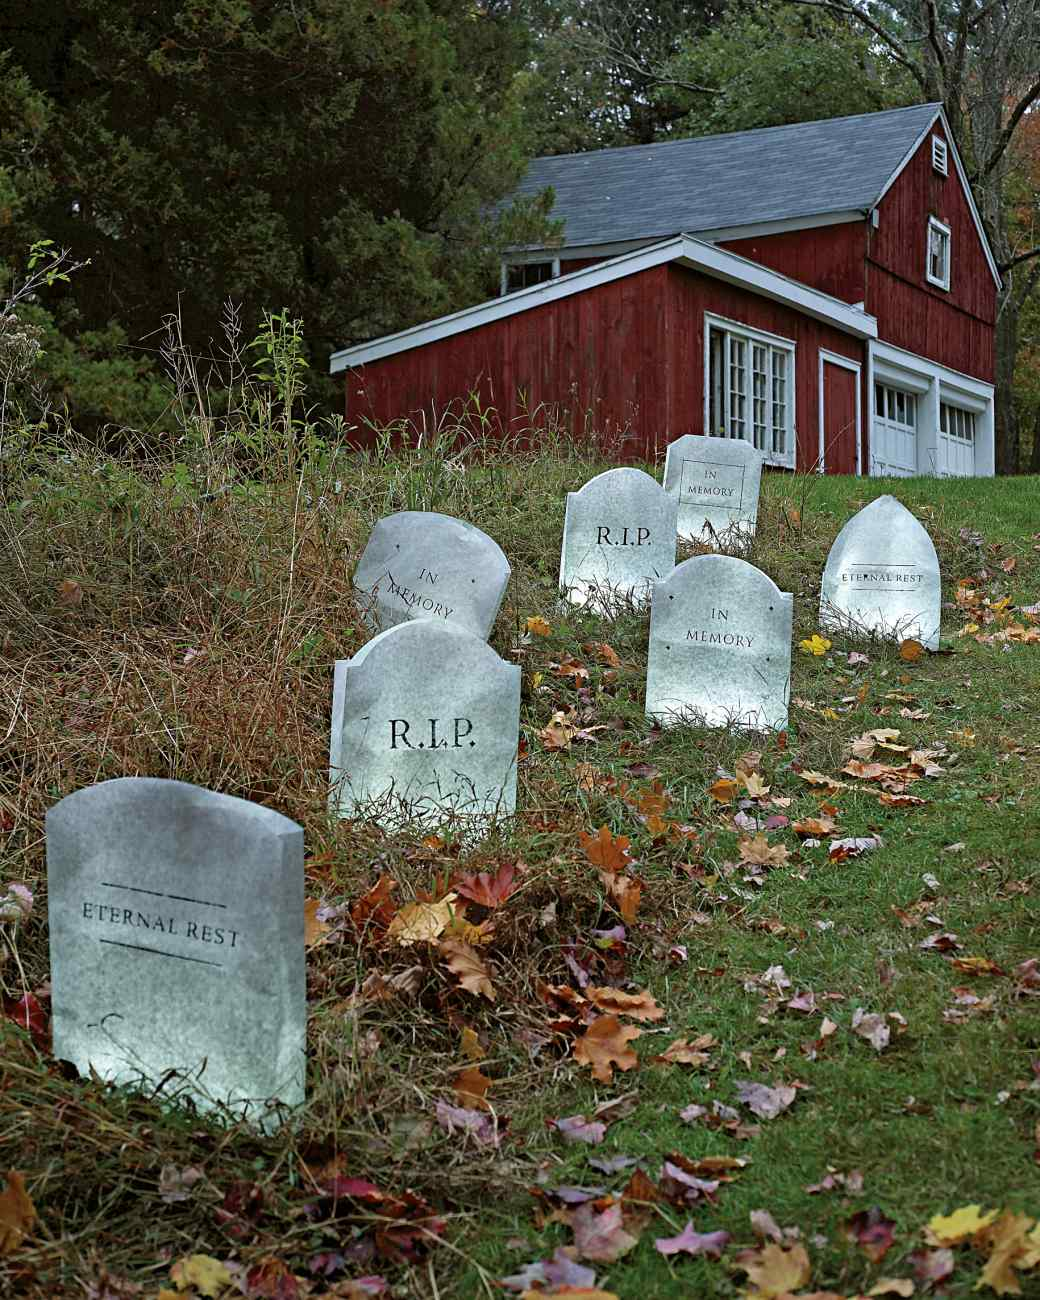 2 rows of tombstones